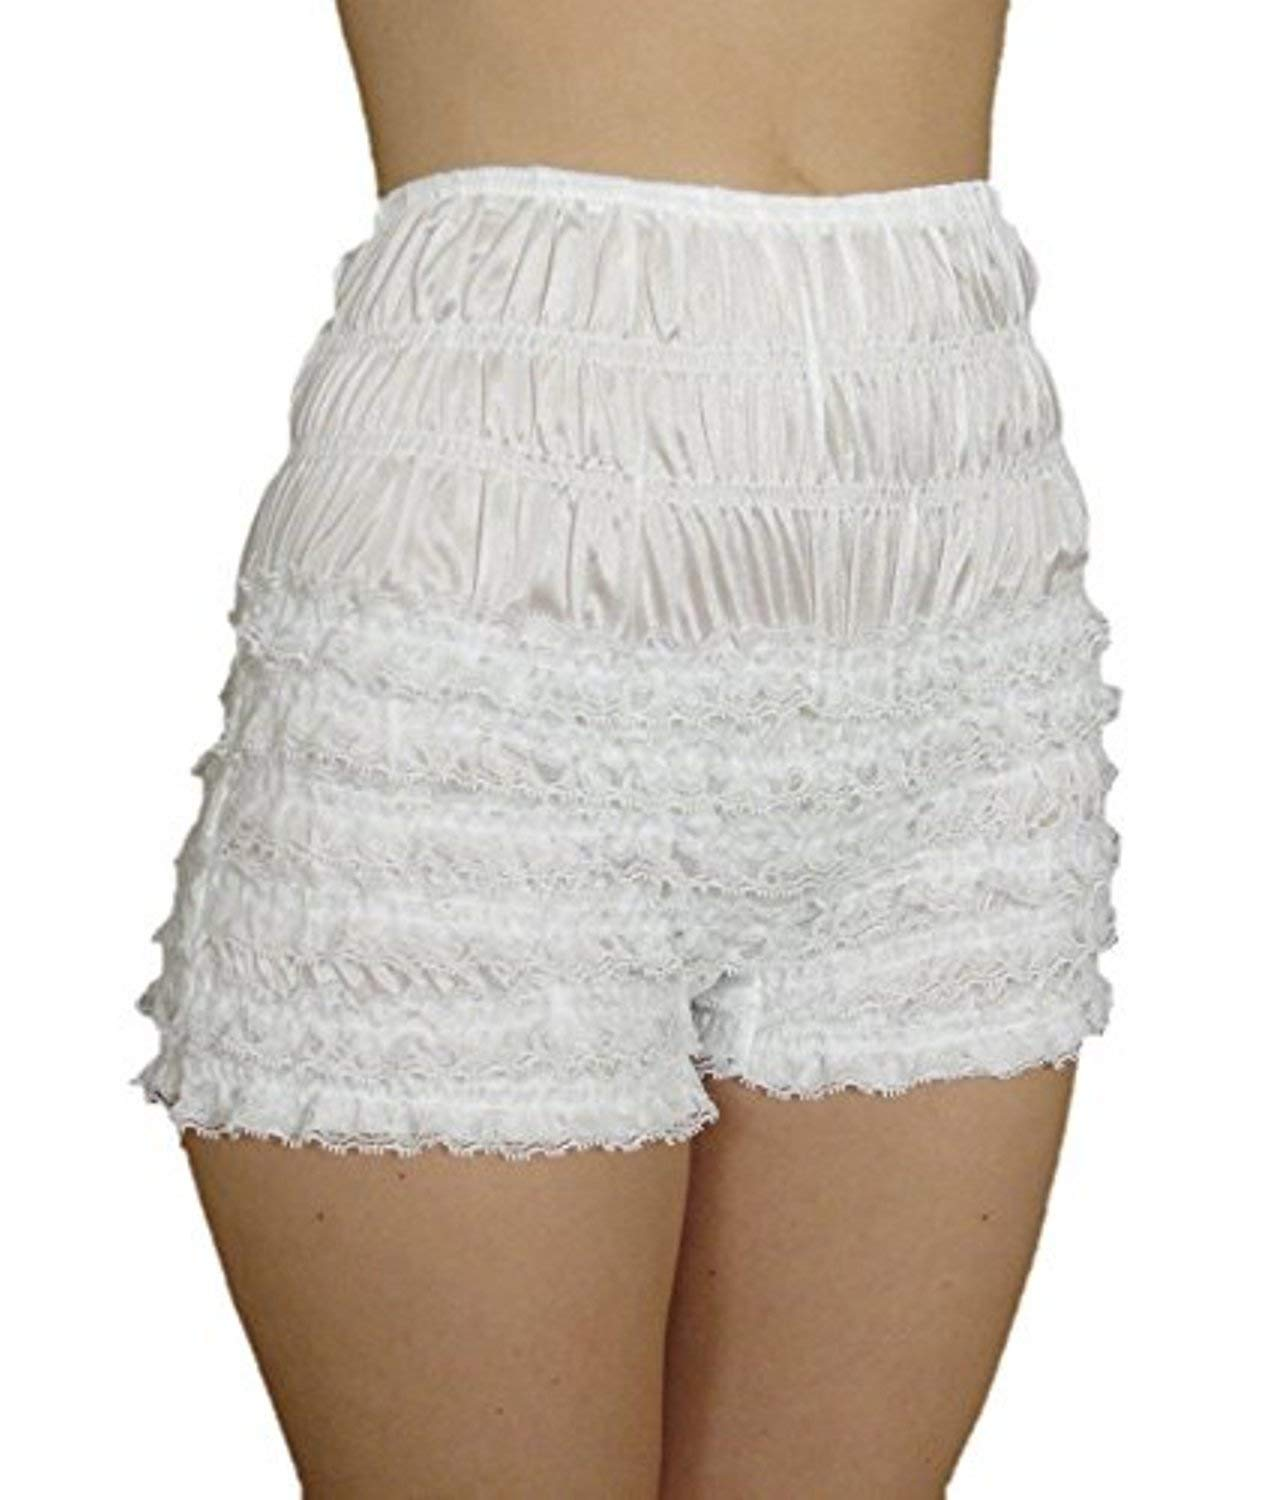 Malco Modes Womens Sexy Ruffle Panties Tanga Dance Bloomers Sissy Booty Shorts (Apple, XX-Large) by Malco Modes